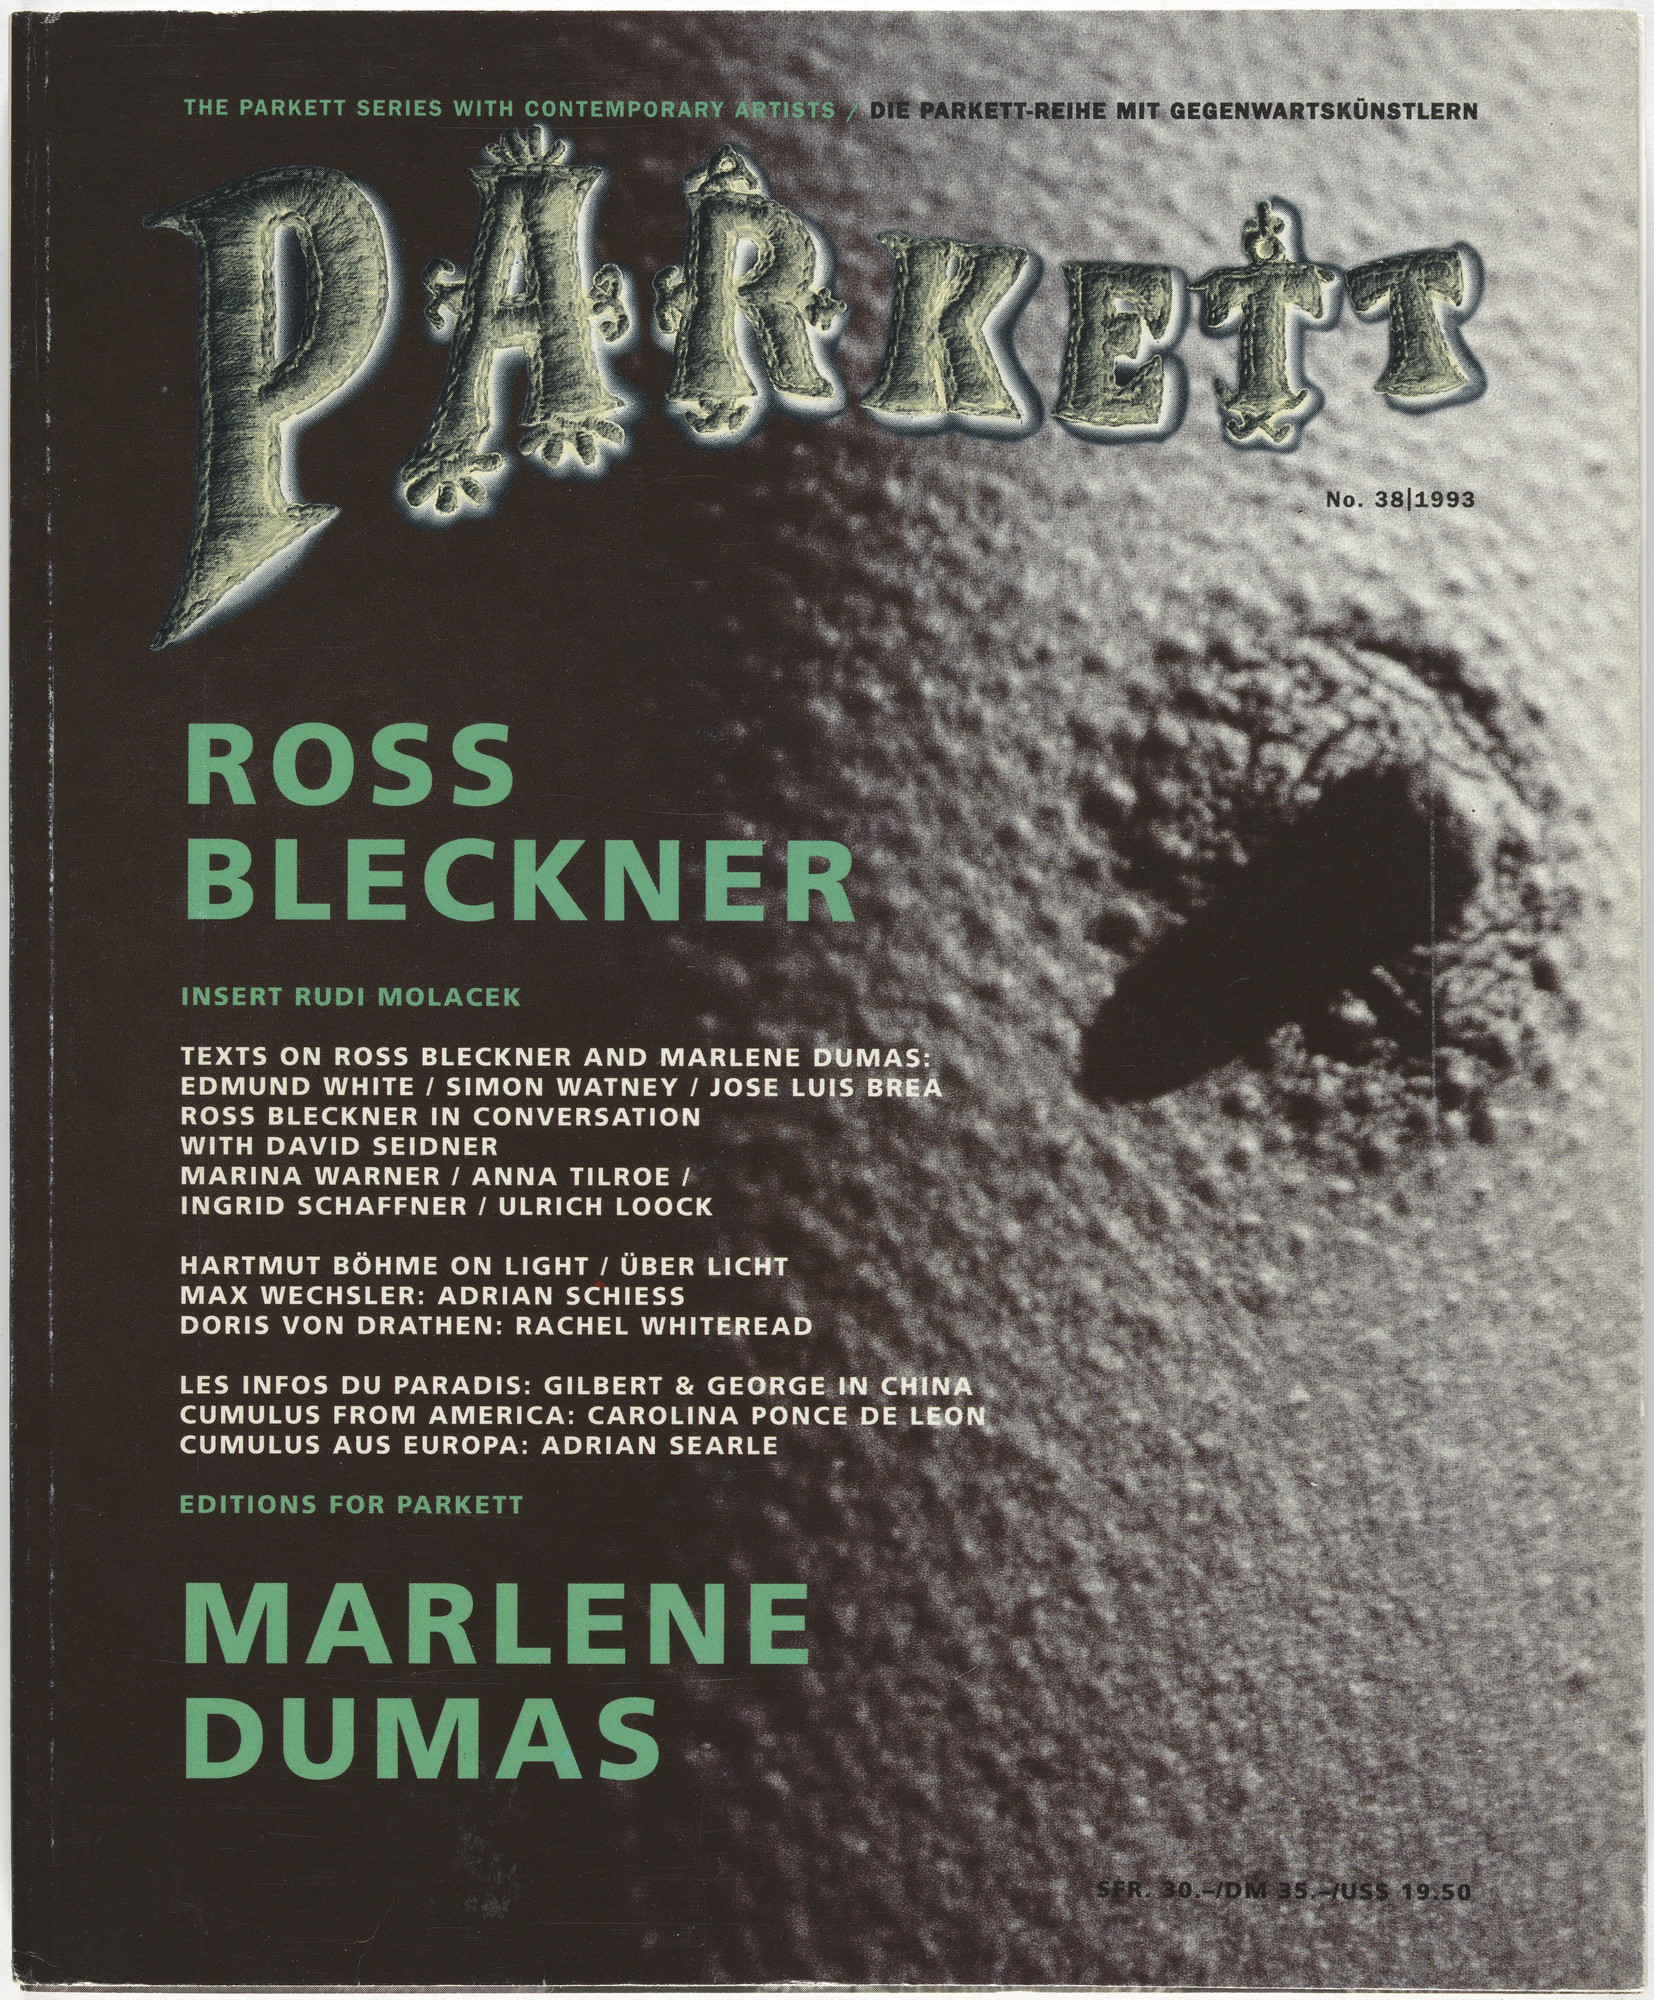 Ross Bleckner, Marlene Dumas, Rudi Molacek, Jean-Jacques Rullier, Various Artists. Parkett no. 38. 1993